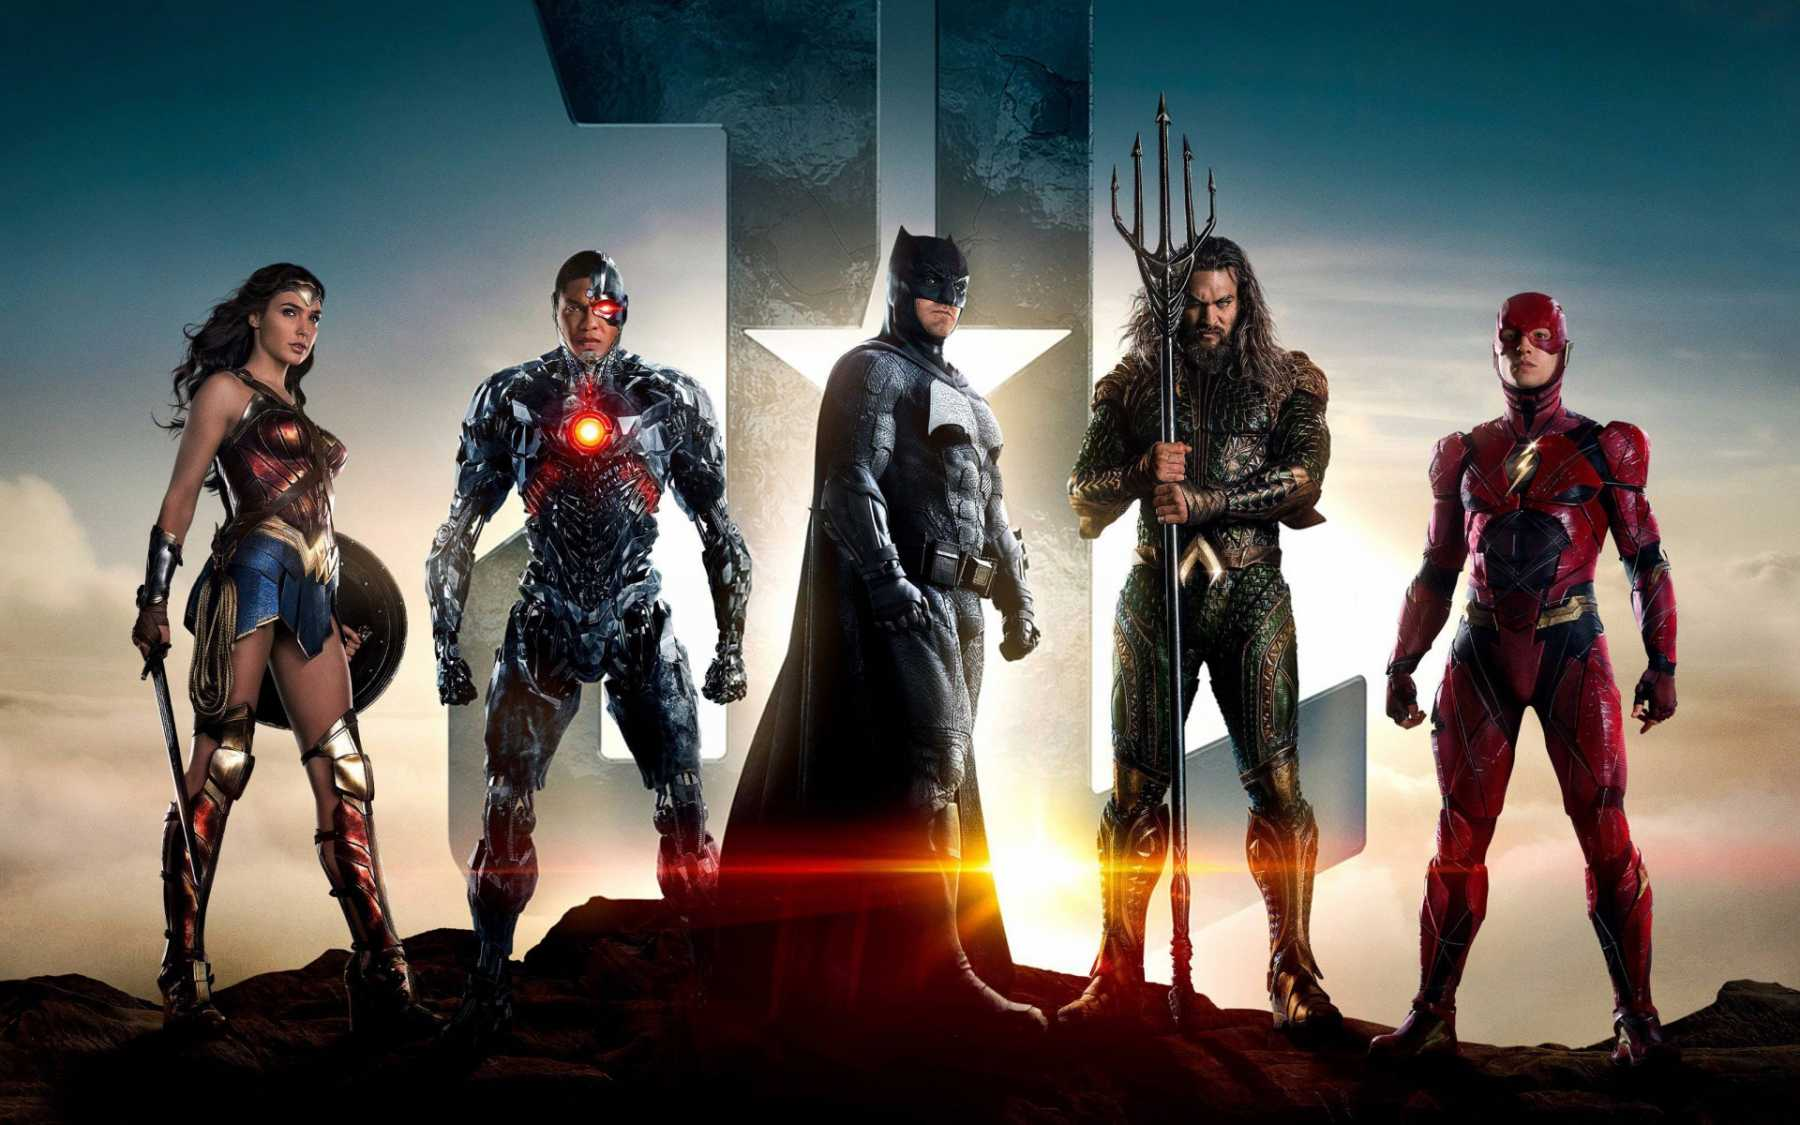 New Trailer For 'Justice League' Unveiled At New York Comic Con | Justice League